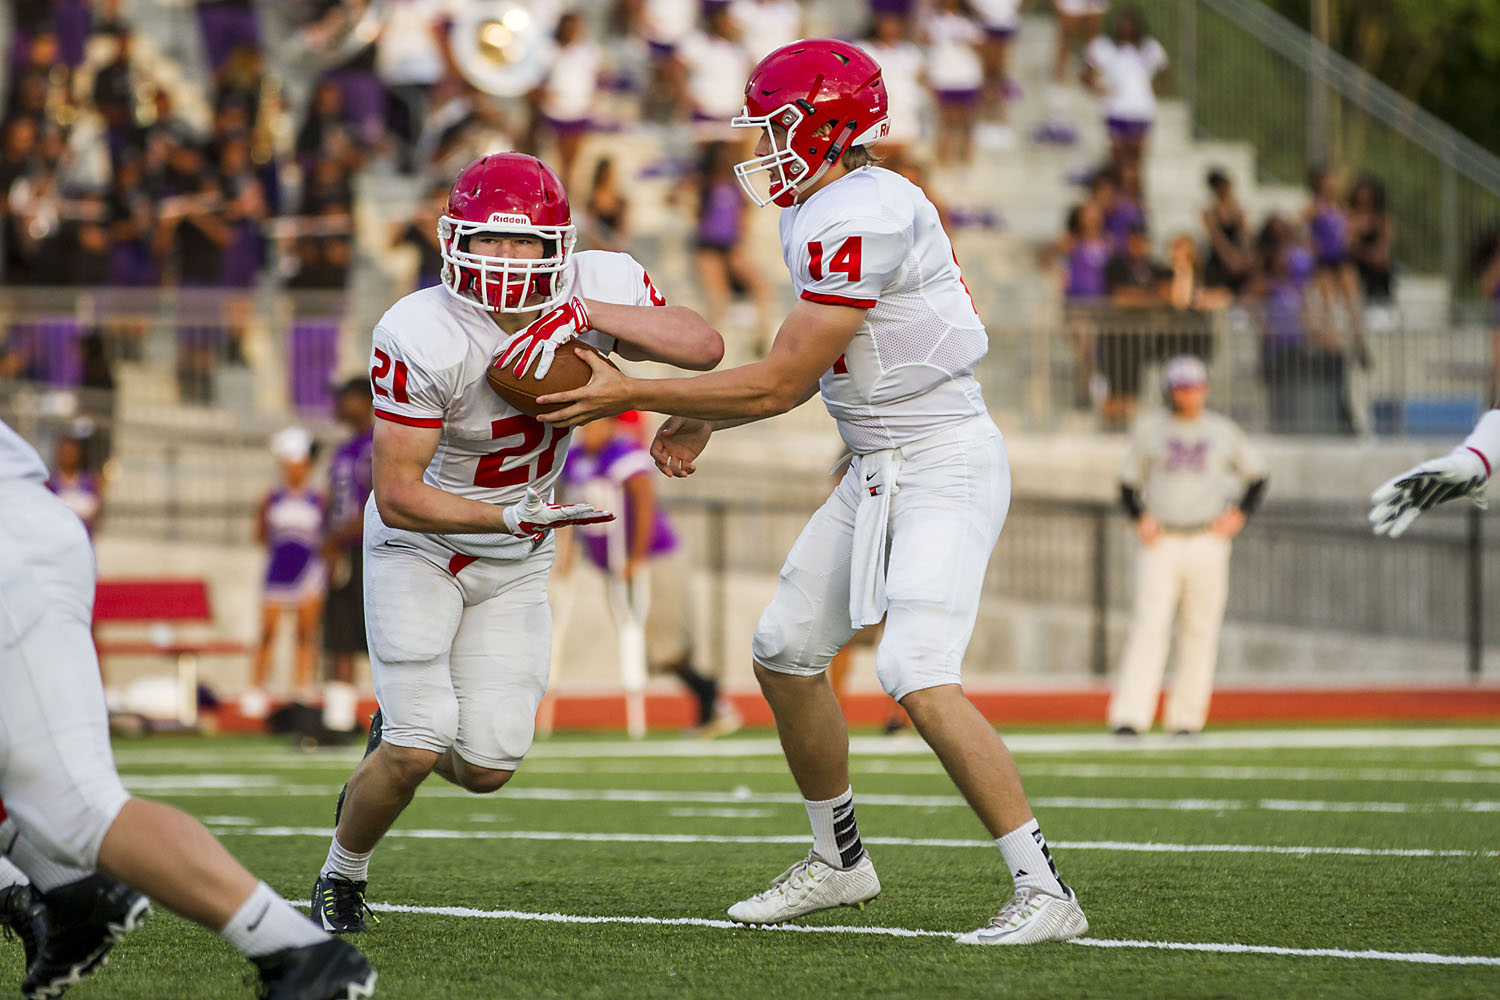 Hewitt-Trussville falls to Minor in rainy spring game